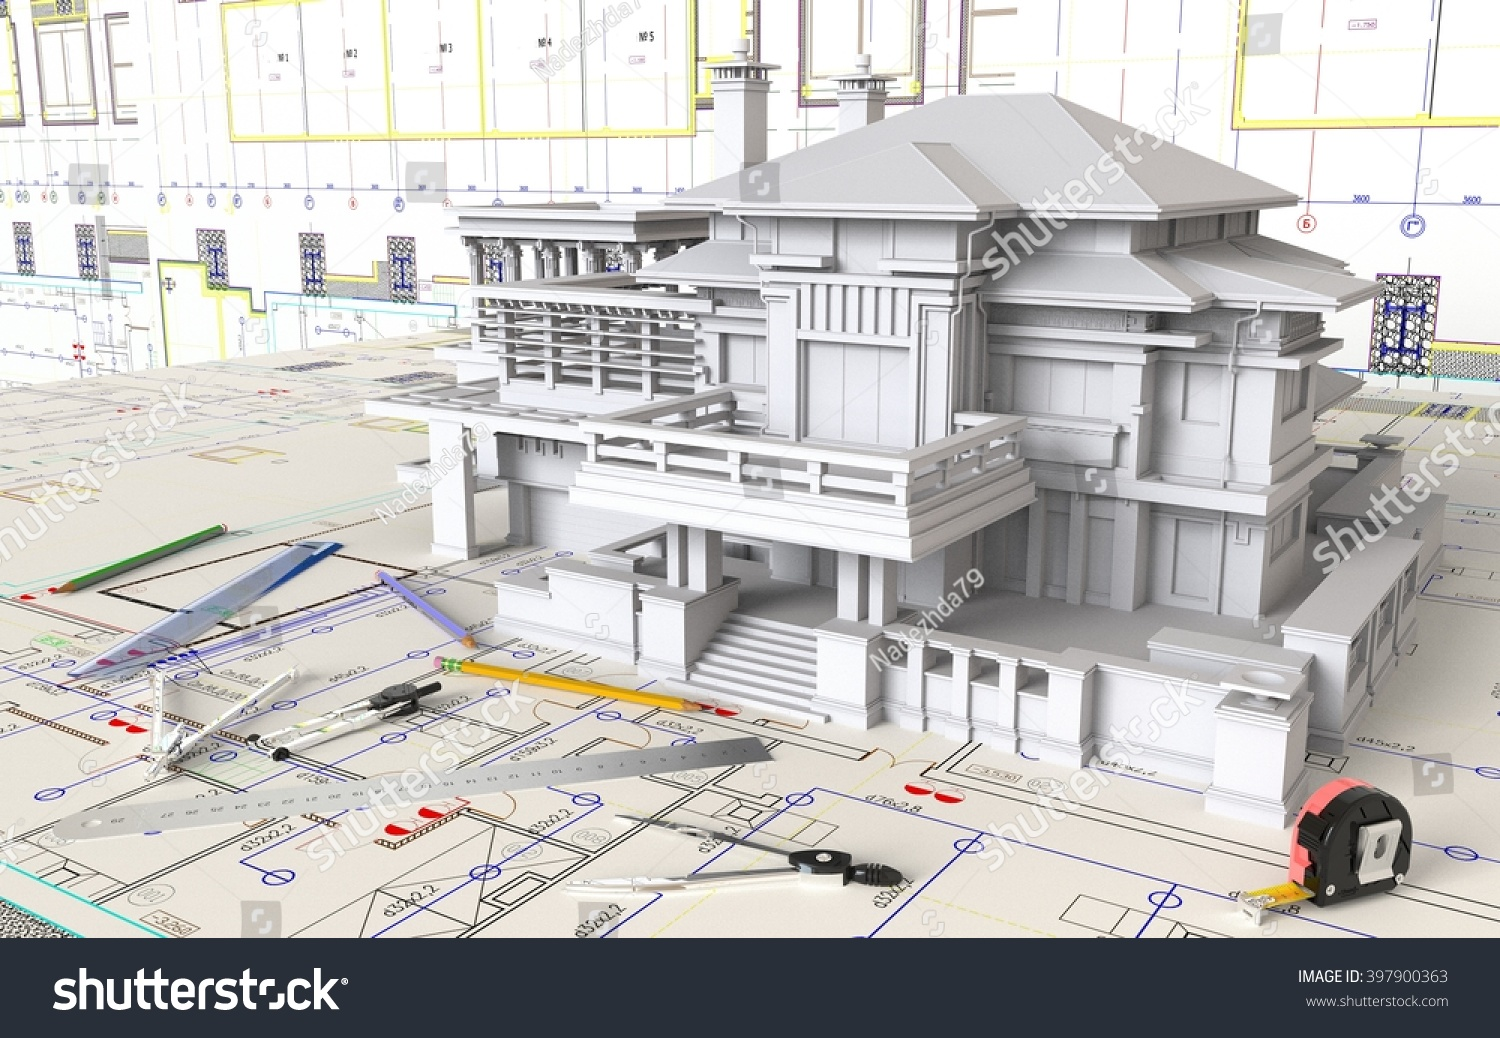 3d rendering house layout architectural drawings stock